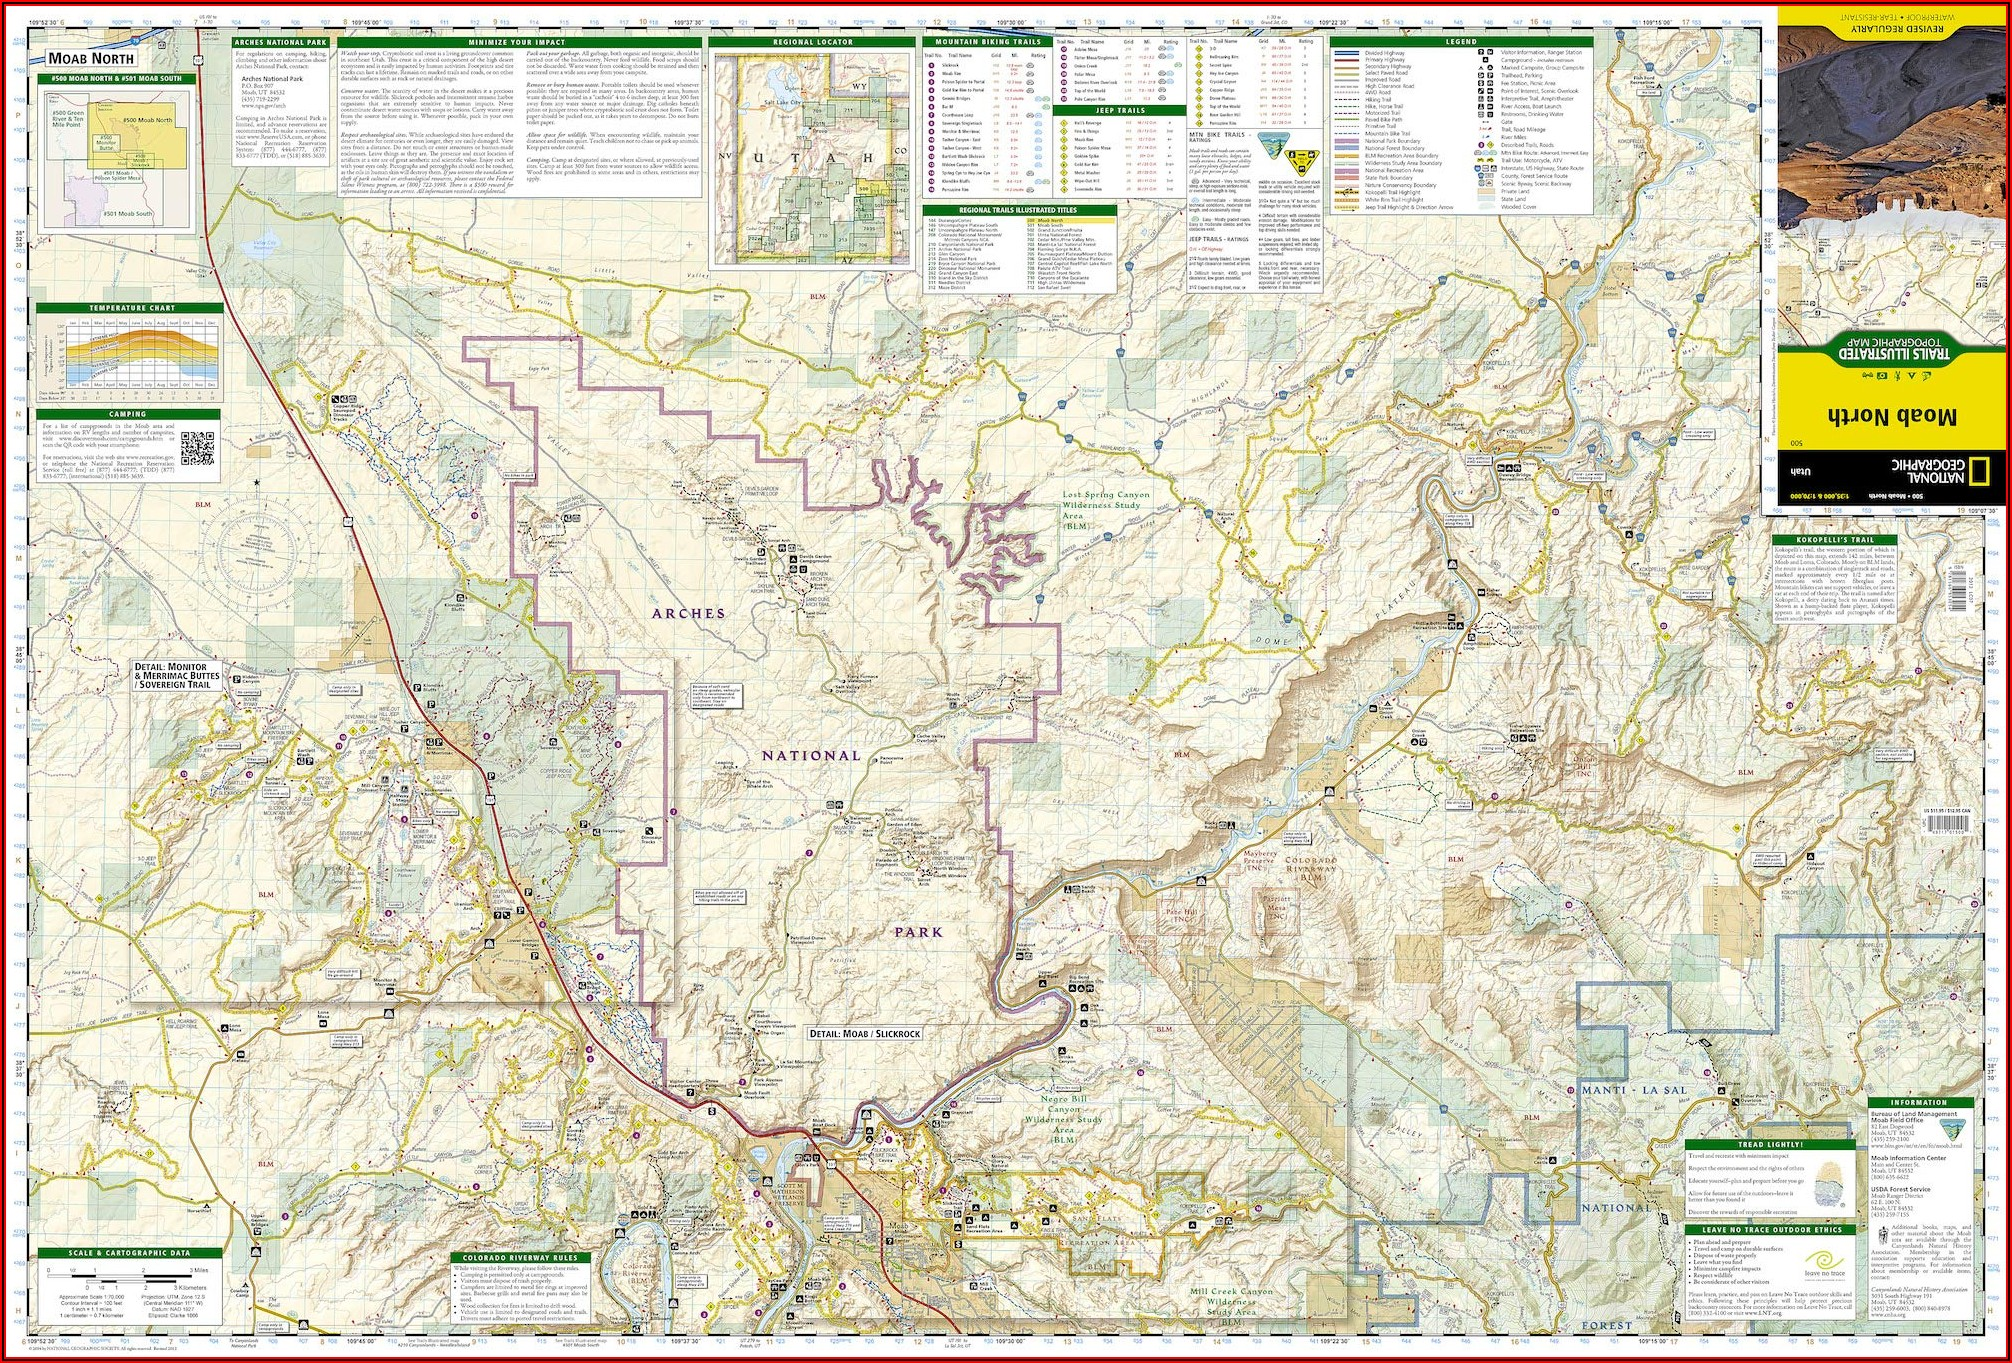 National Geographic Trails Illustrated Topographic Maps